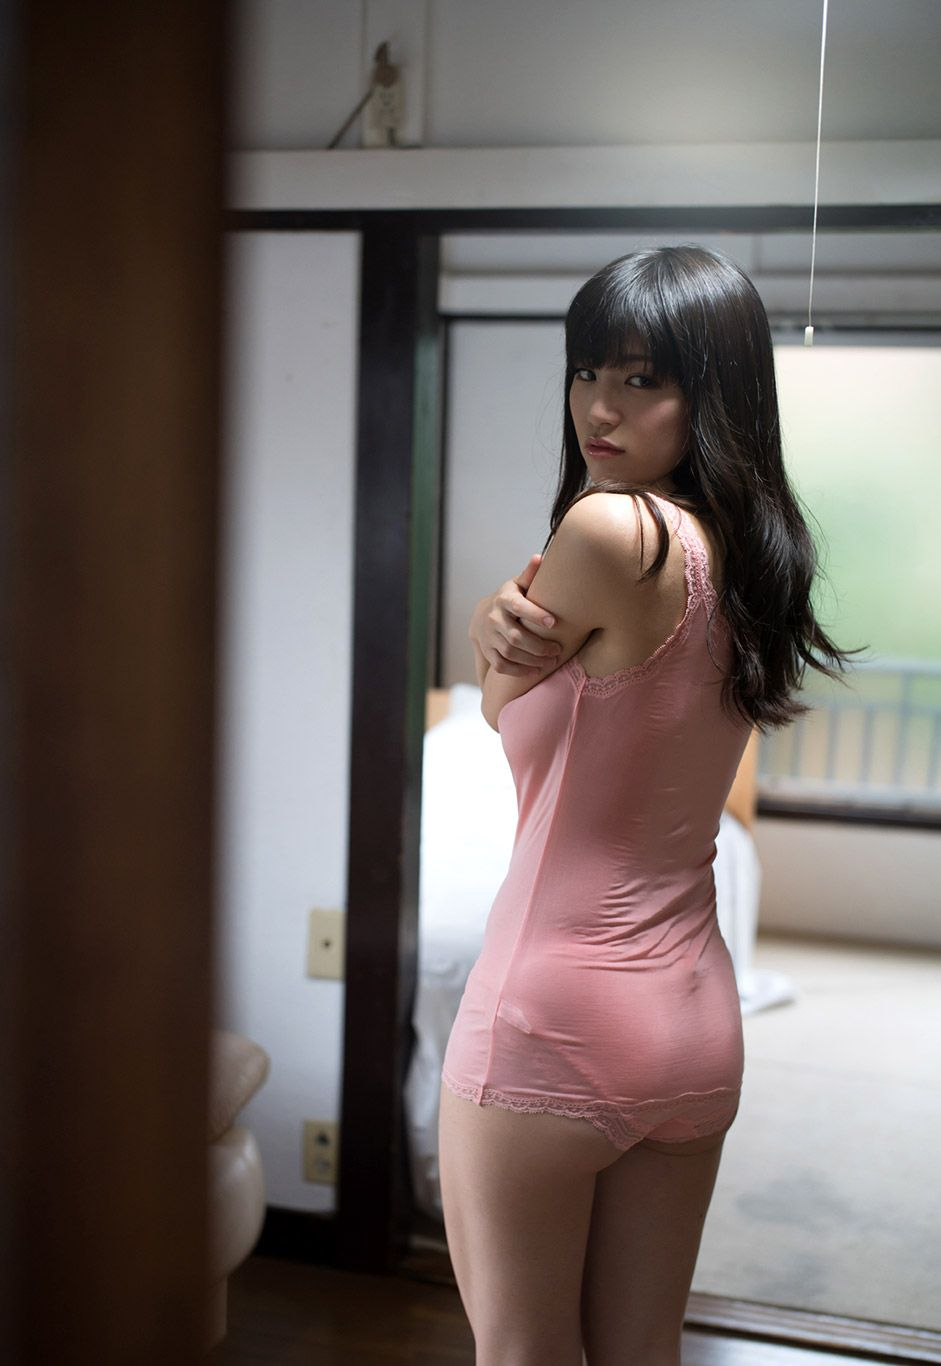 hashimoto asian girl personals Japanese feel no affinity with  with netizen opinions on why fewer japanese than ever 'feel an affinity' with their asian  prime minister ryutaro hashimoto.